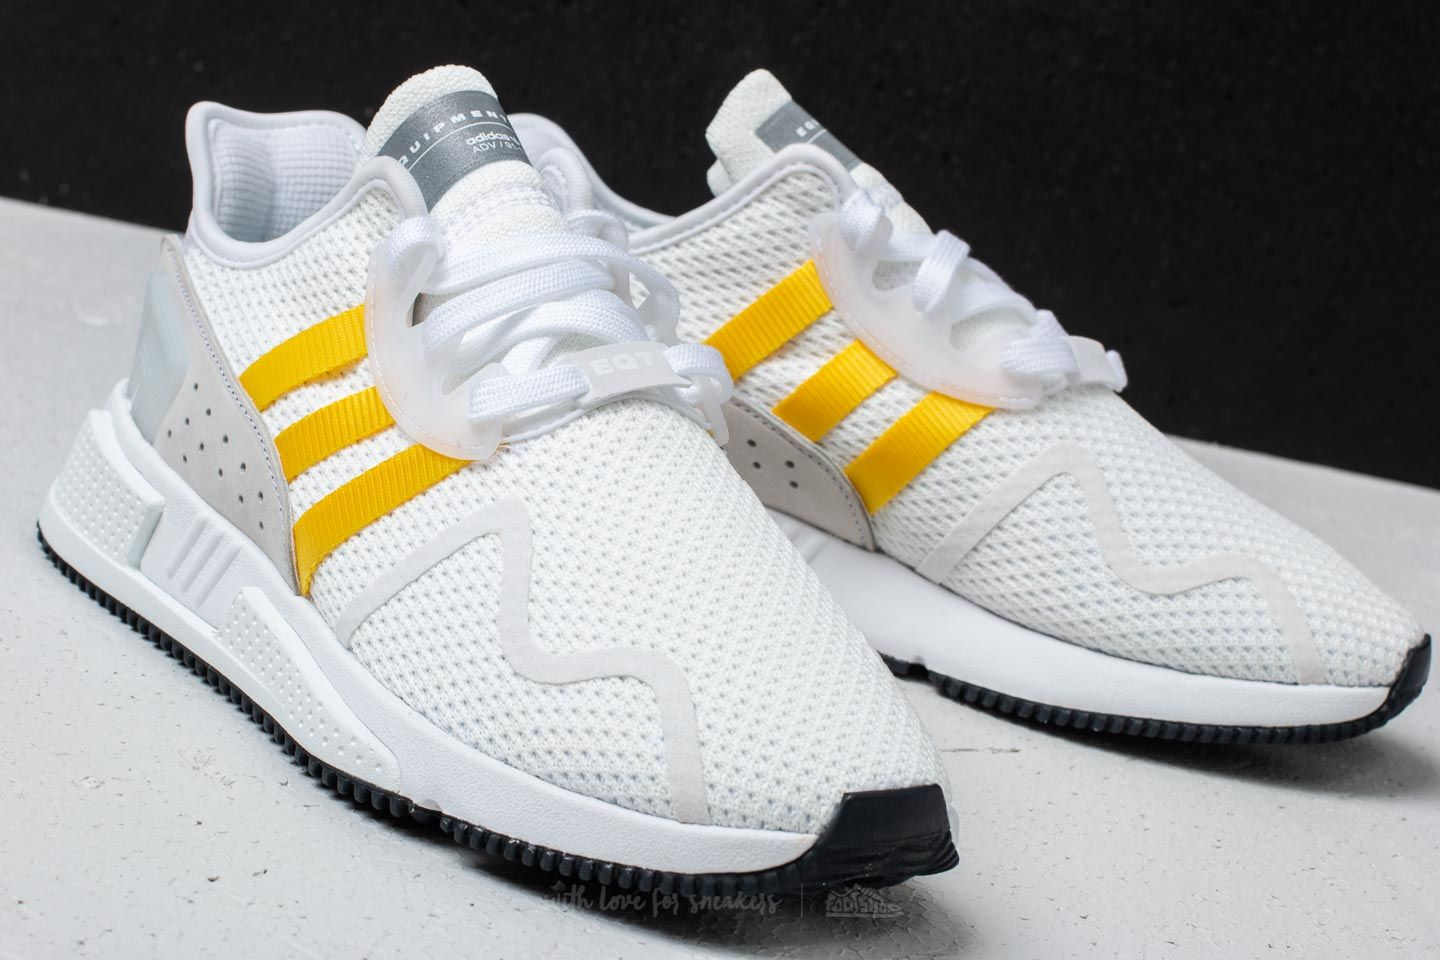 new concept 1e115 e17d4 adidas EQT Cushion ADV Ftw White/ Eqt Yellow/ Silver ...